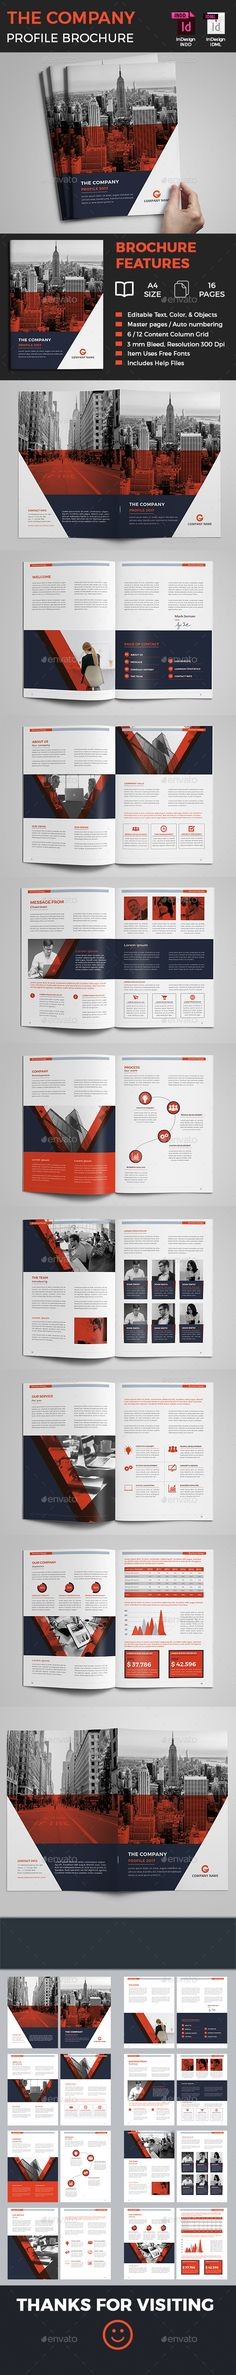 Corporate Brochure — InDesign INDD #a4 #blue • Download ➝ https://graphicriver.net/item/corporate-brochure/19768305?ref=pxcr